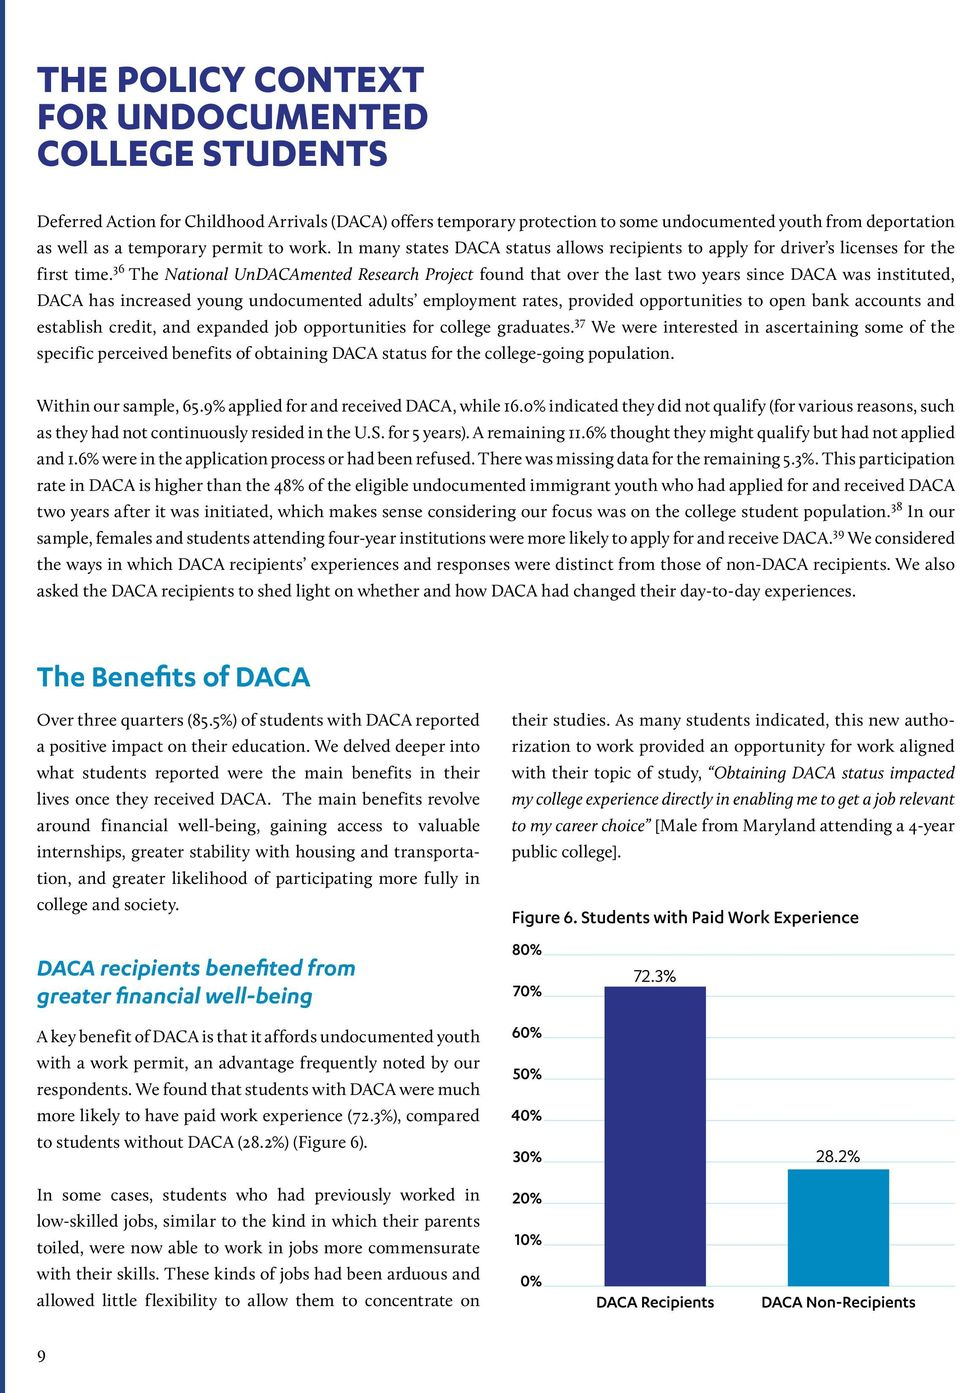 36 The National UnDACAmented Research Project found that over the last two years since DACA was instituted, DACA has increased young undocumented adults employment rates, provided opportunities to